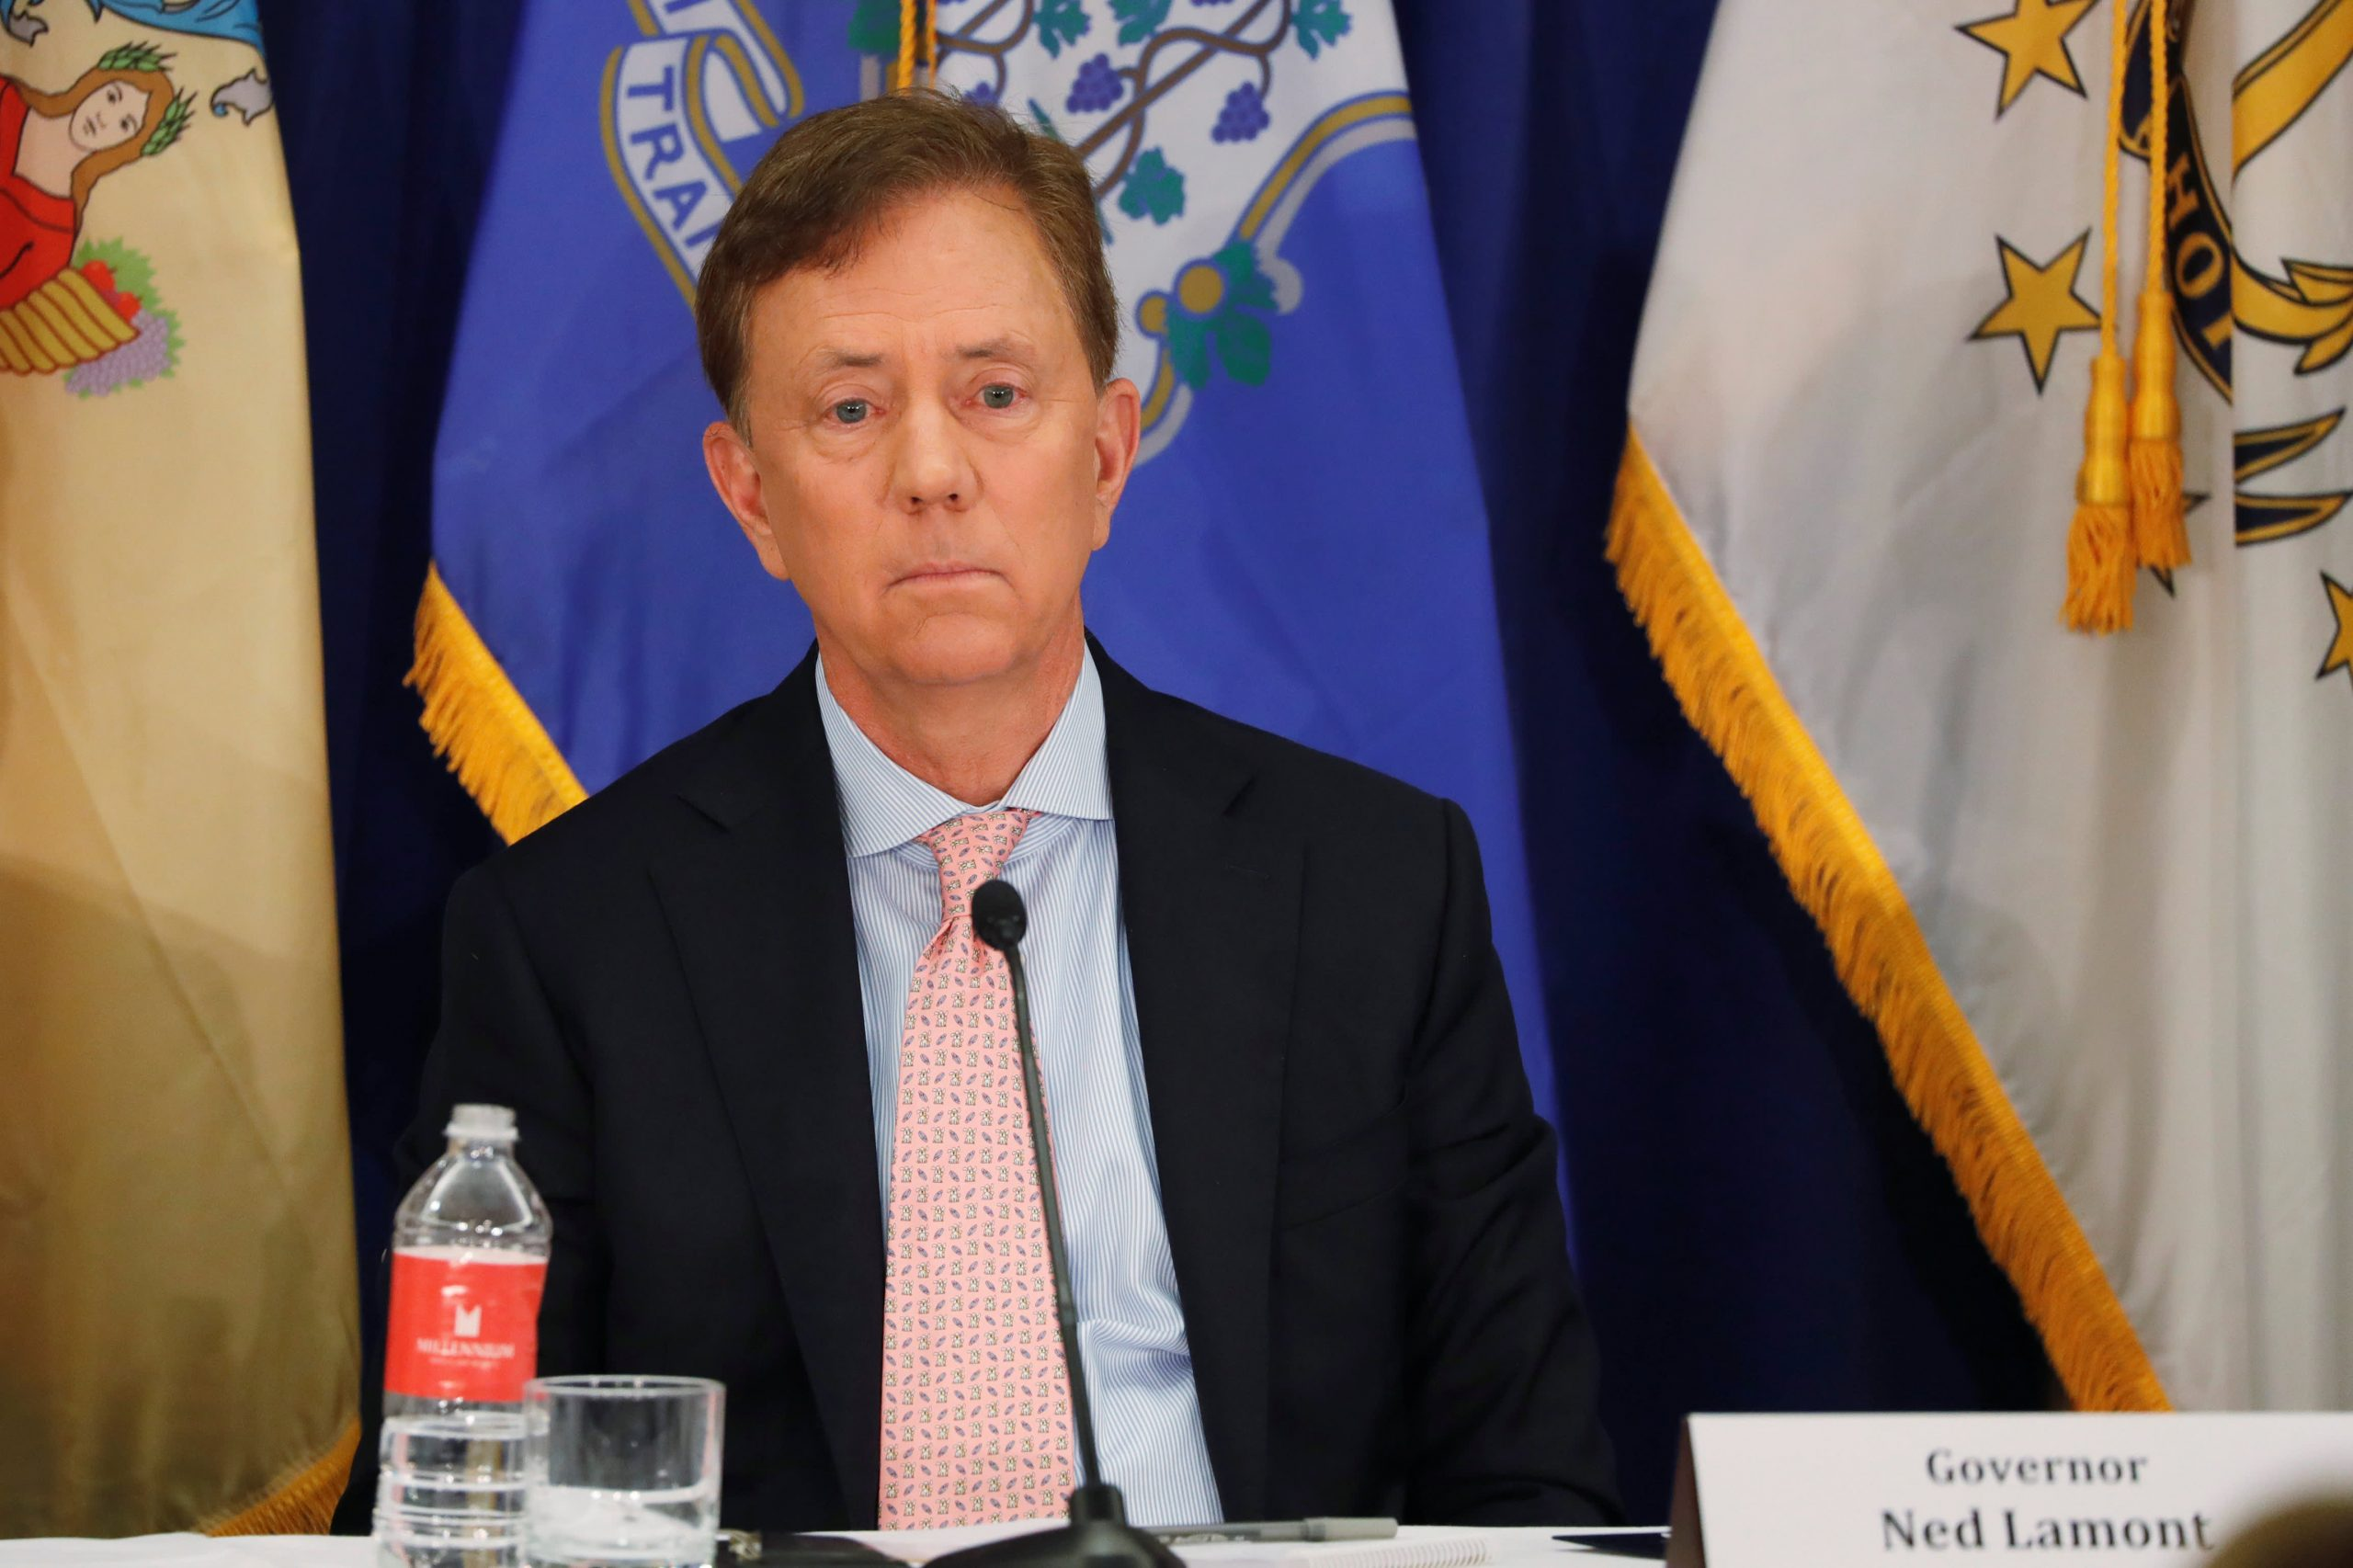 we-got-to-do-a-better-job-vaccinating-minority-communities-says-connecticut-governor